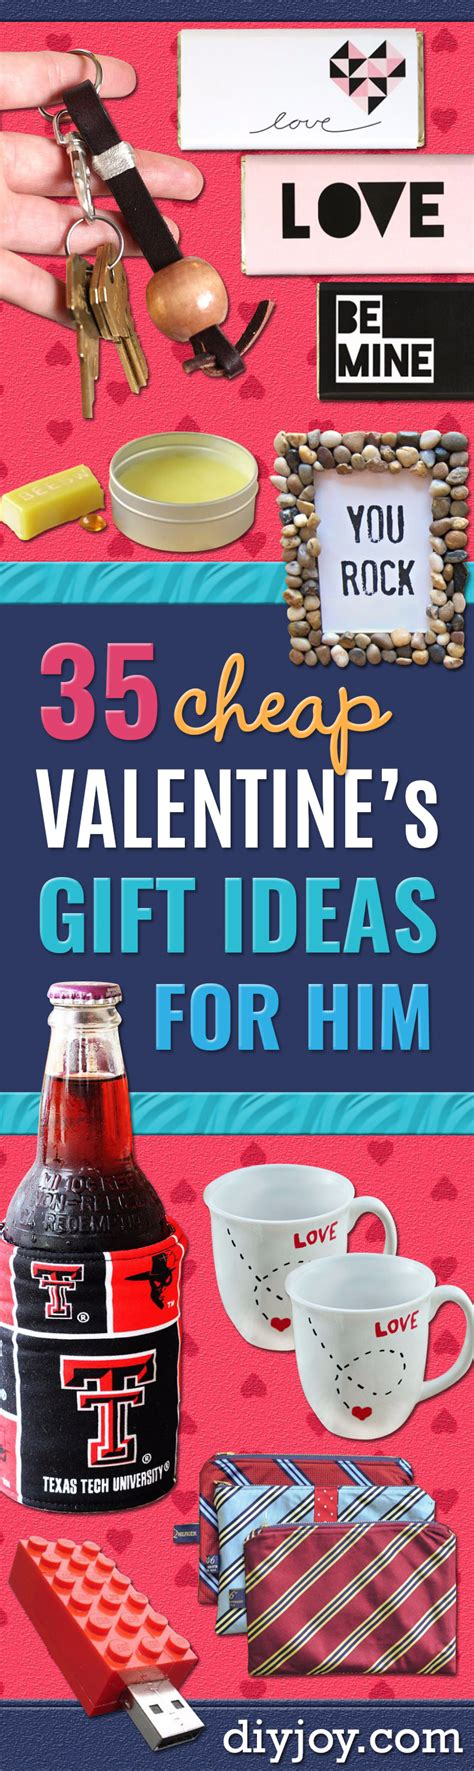 cheap valentines ideas for him 35 cheap s gift ideas for him